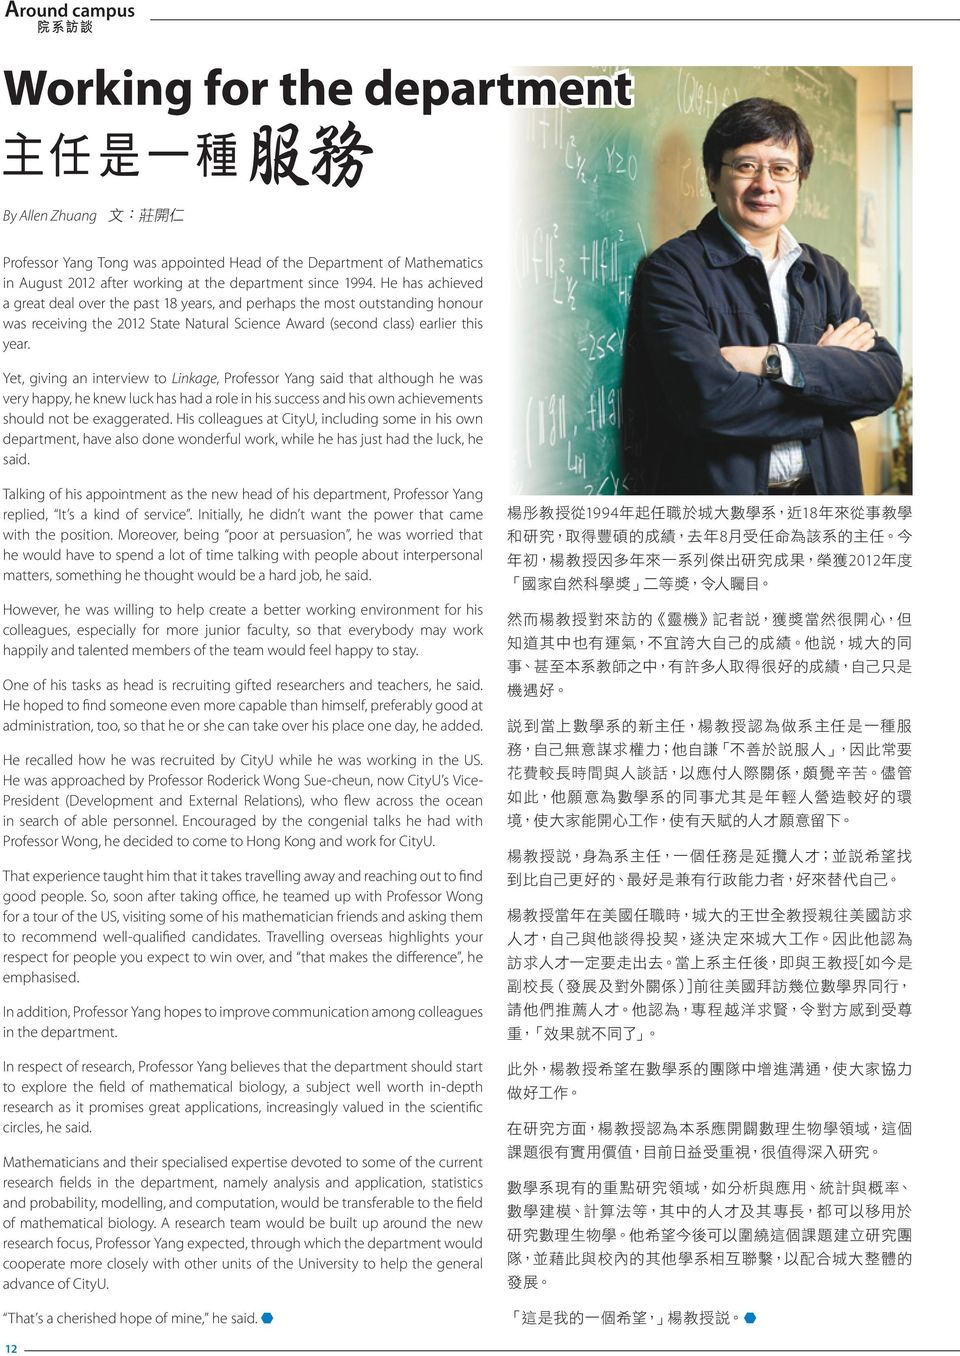 Yet, giving an interview to Linkage, Professor Yang said that although he was very happy, he knew luck has had a role in his success and his own achievements should not be exaggerated.